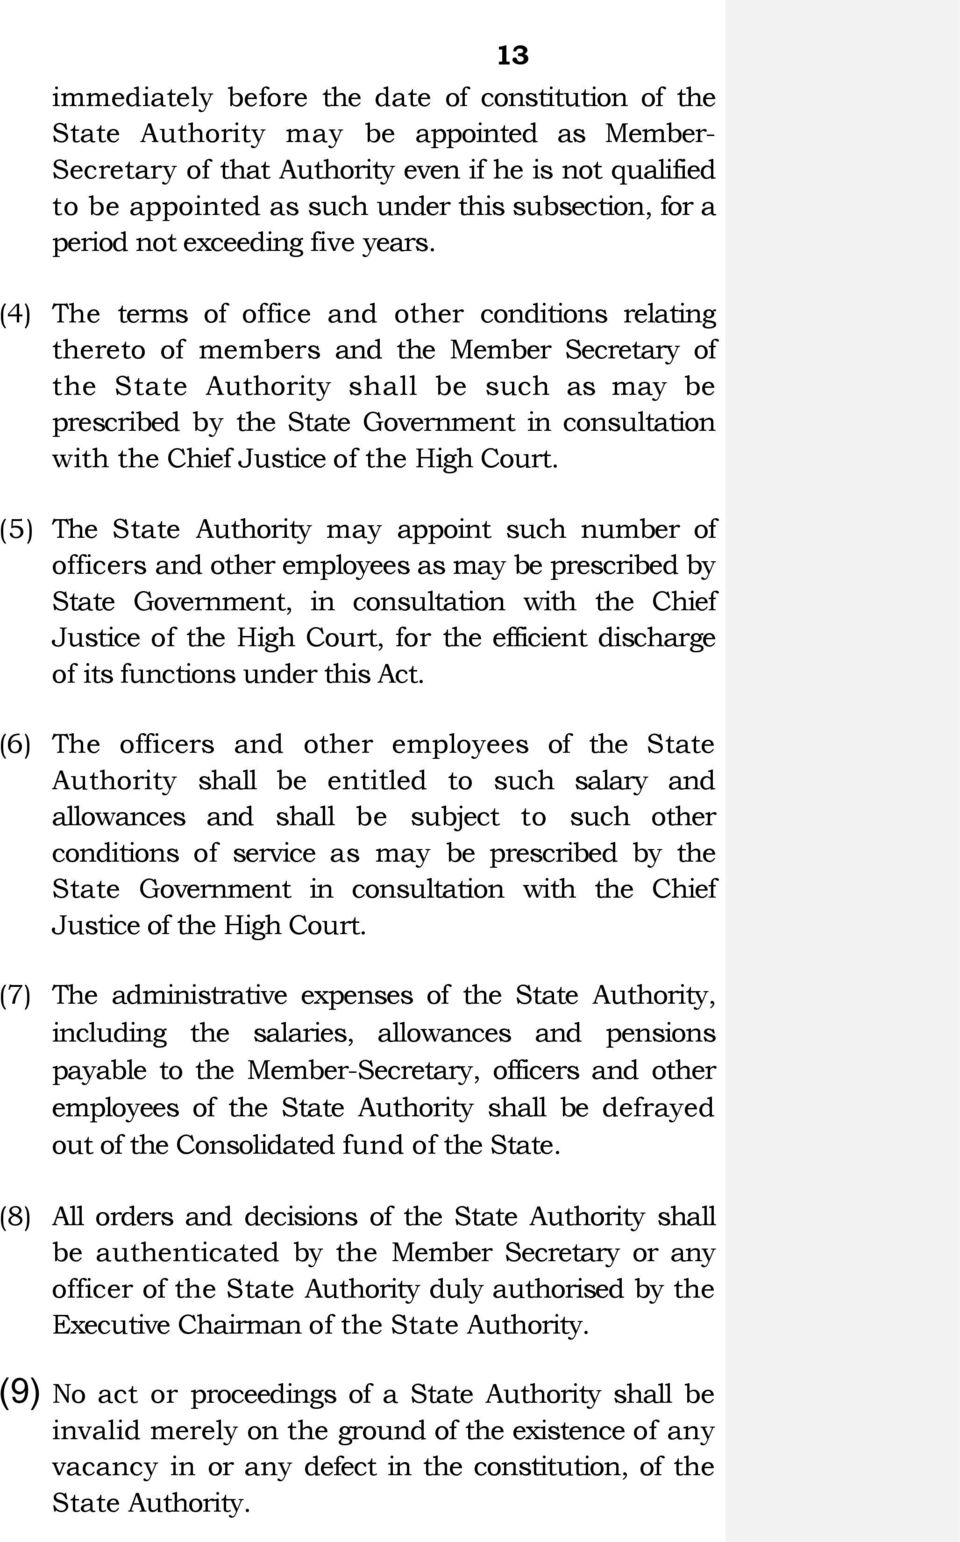 (4) The terms of office and other conditions relating thereto of members and the Member Secretary of the State Authority shall be such as may be prescribed by the State Government in consultation